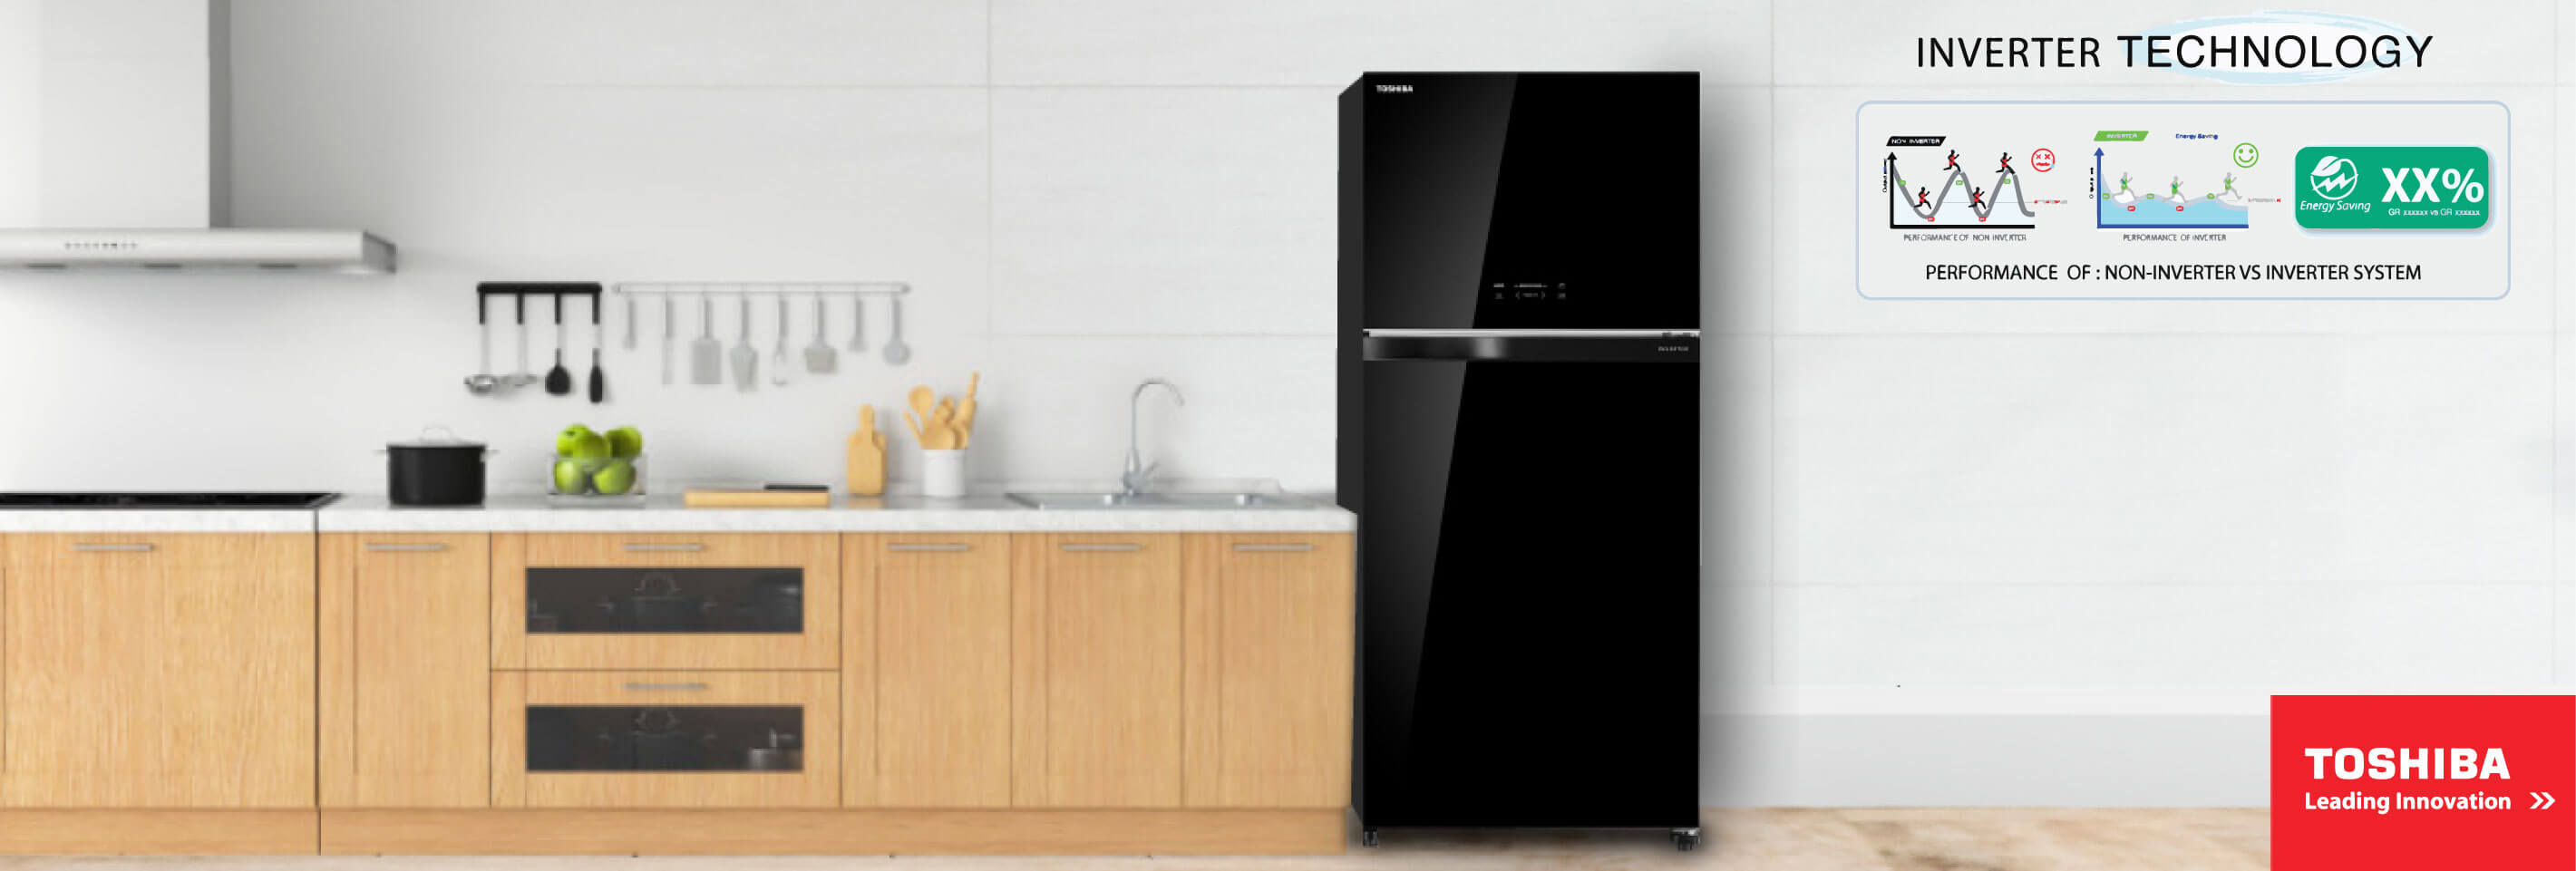 Toshiba Refrigerator Price In Bangladesh Best Electronics